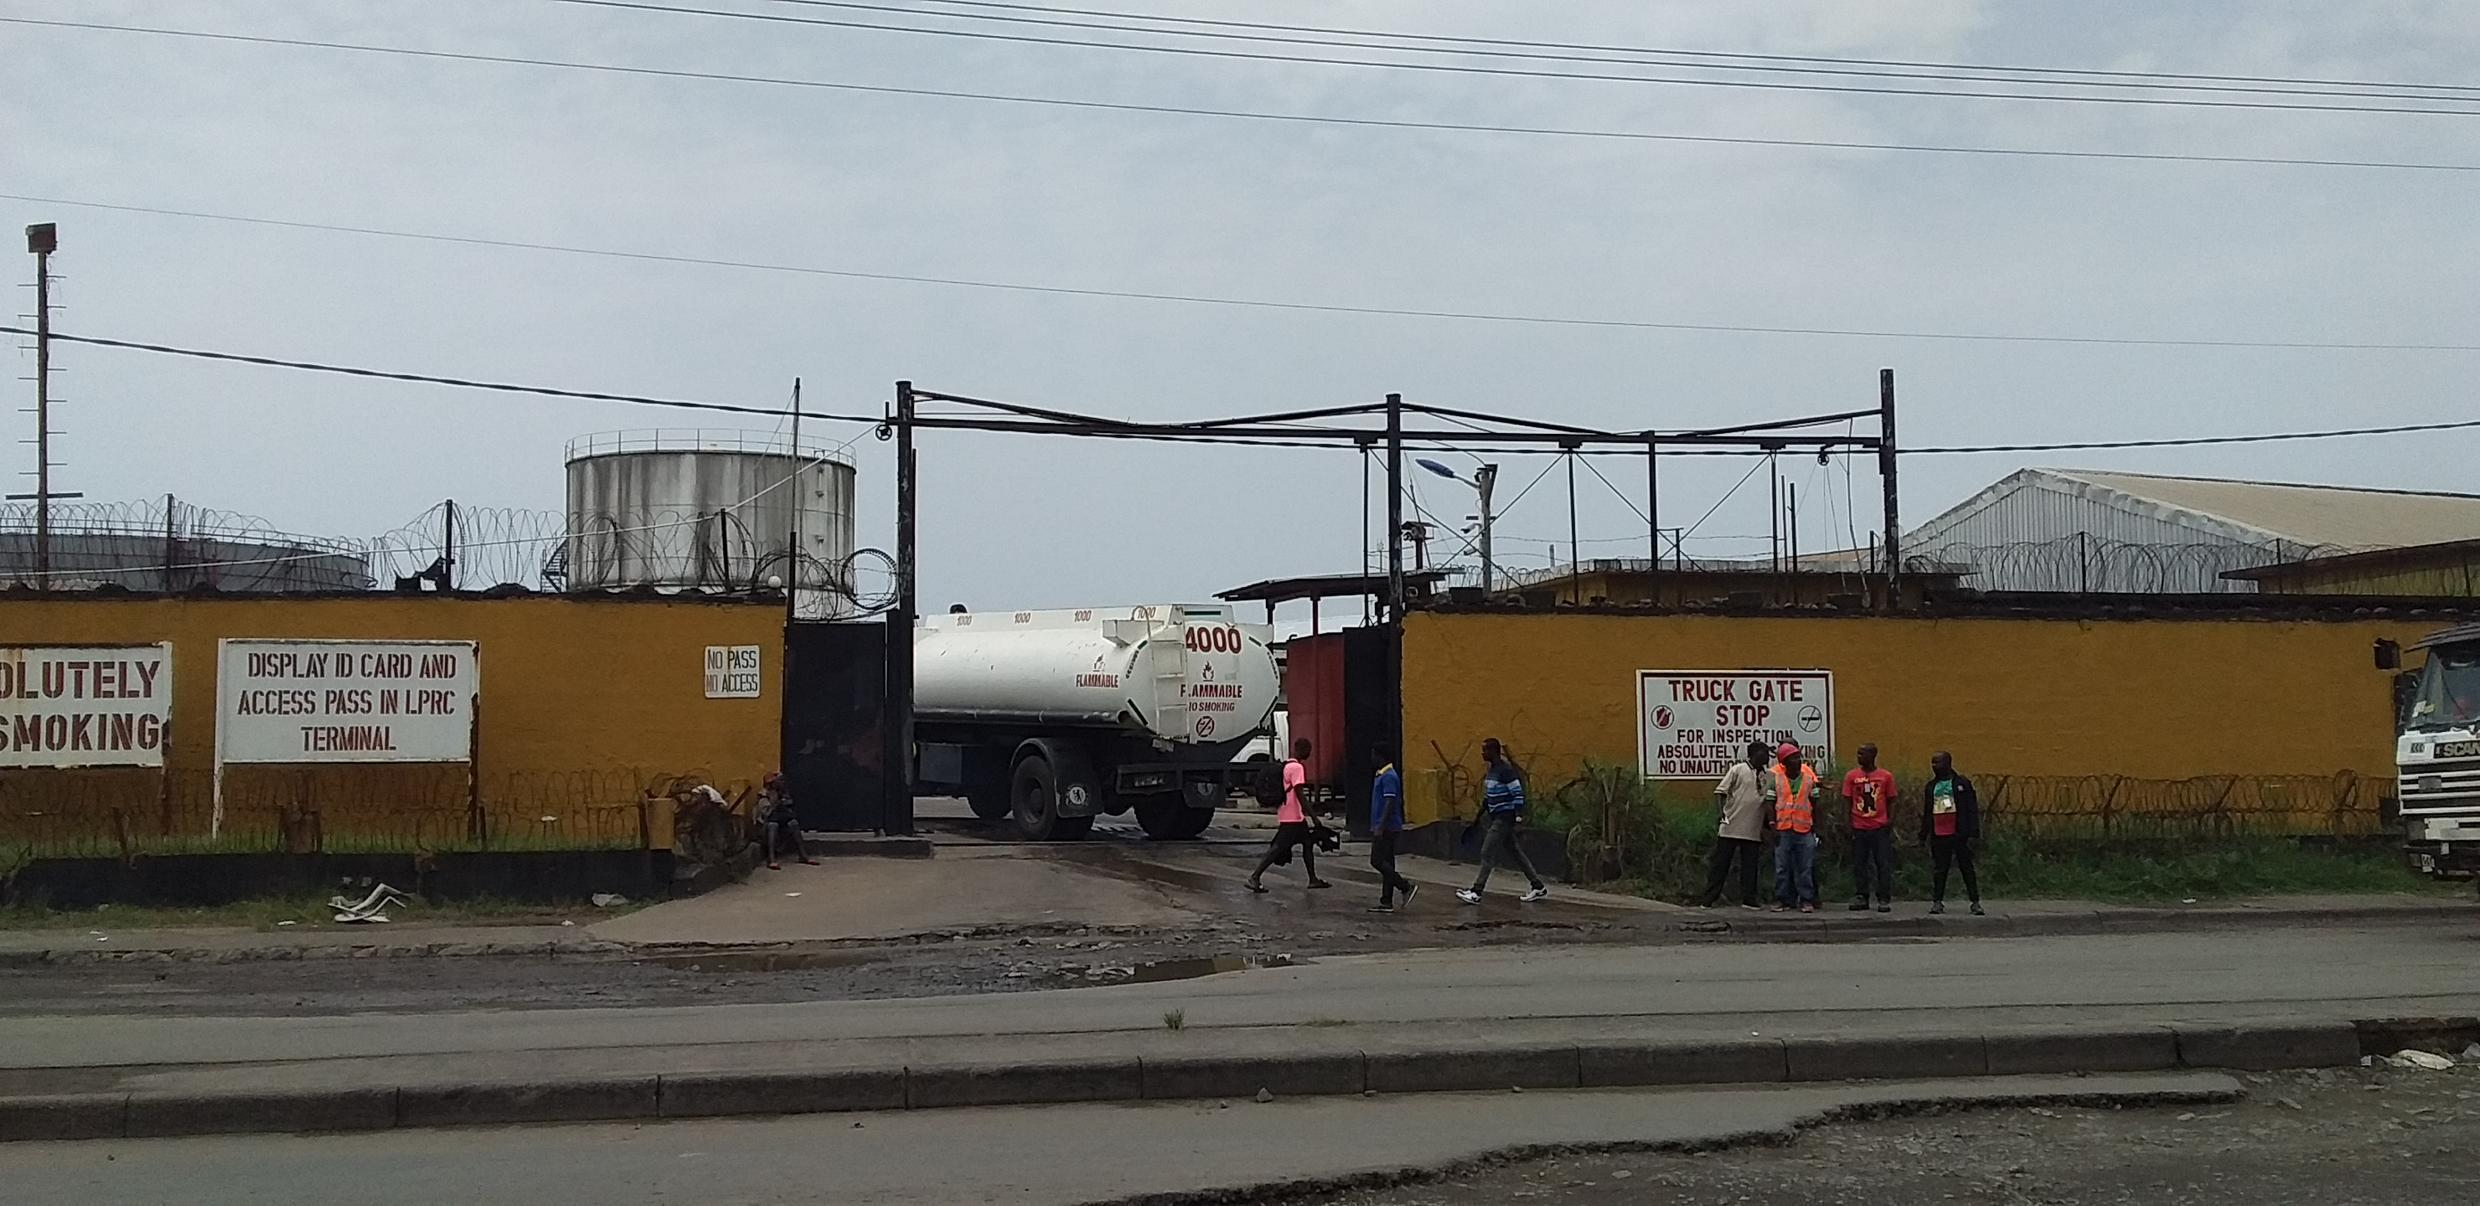 The headquarters for Liberia's Petroleum Refining Company (LPRC), a state-owned entity, in Monrovia, the capital.